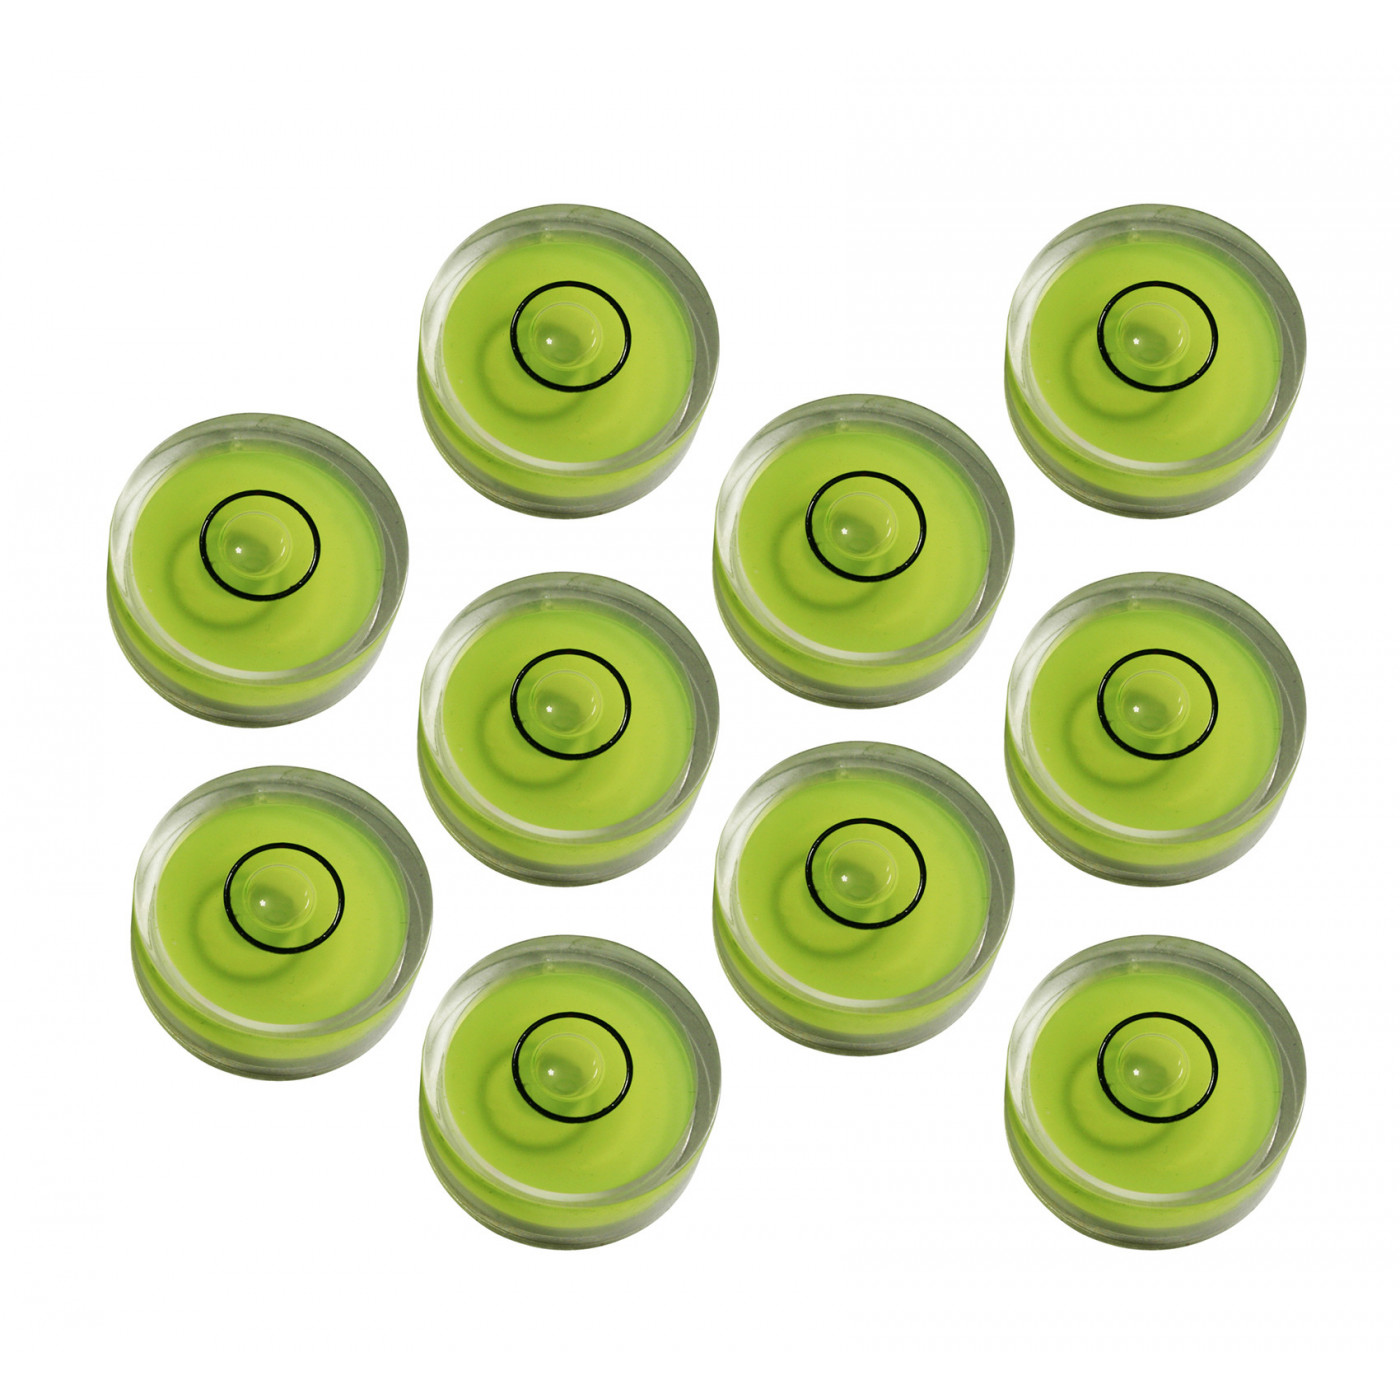 Set of 10 small round bubble levels size 5 (15x8 mm)  - 1